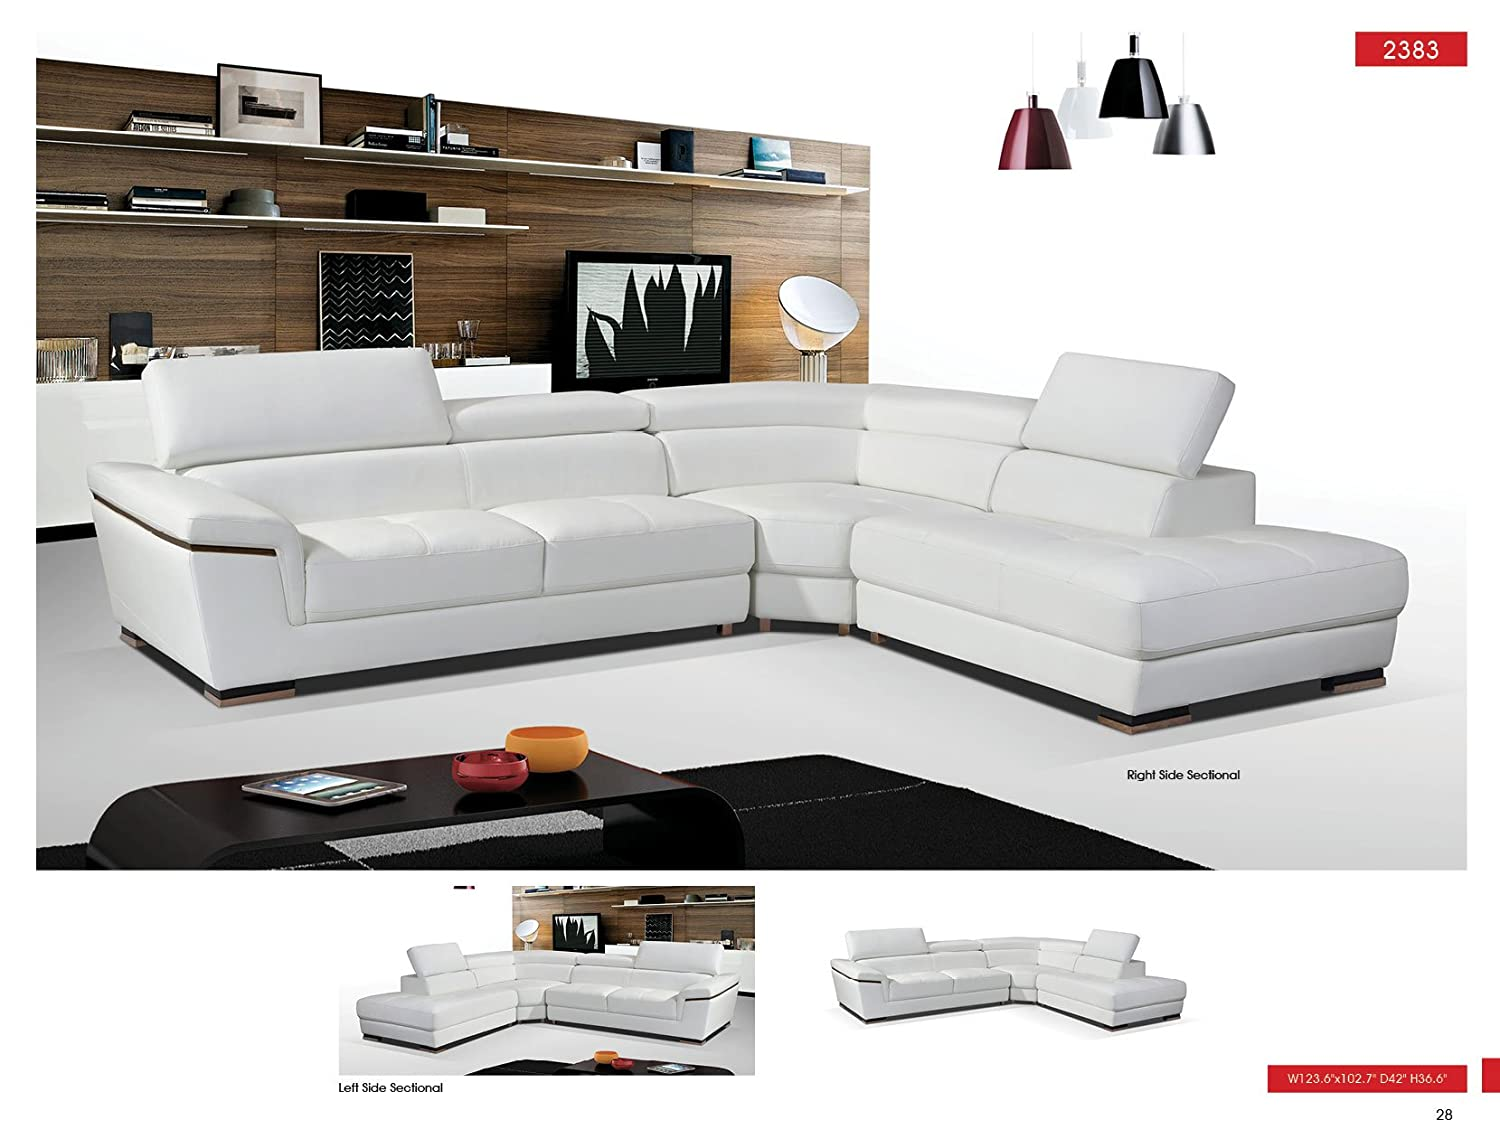 Amazon.com: ESF 2383 White Genuine Leather Sectional Sofa: Kitchen & Dining